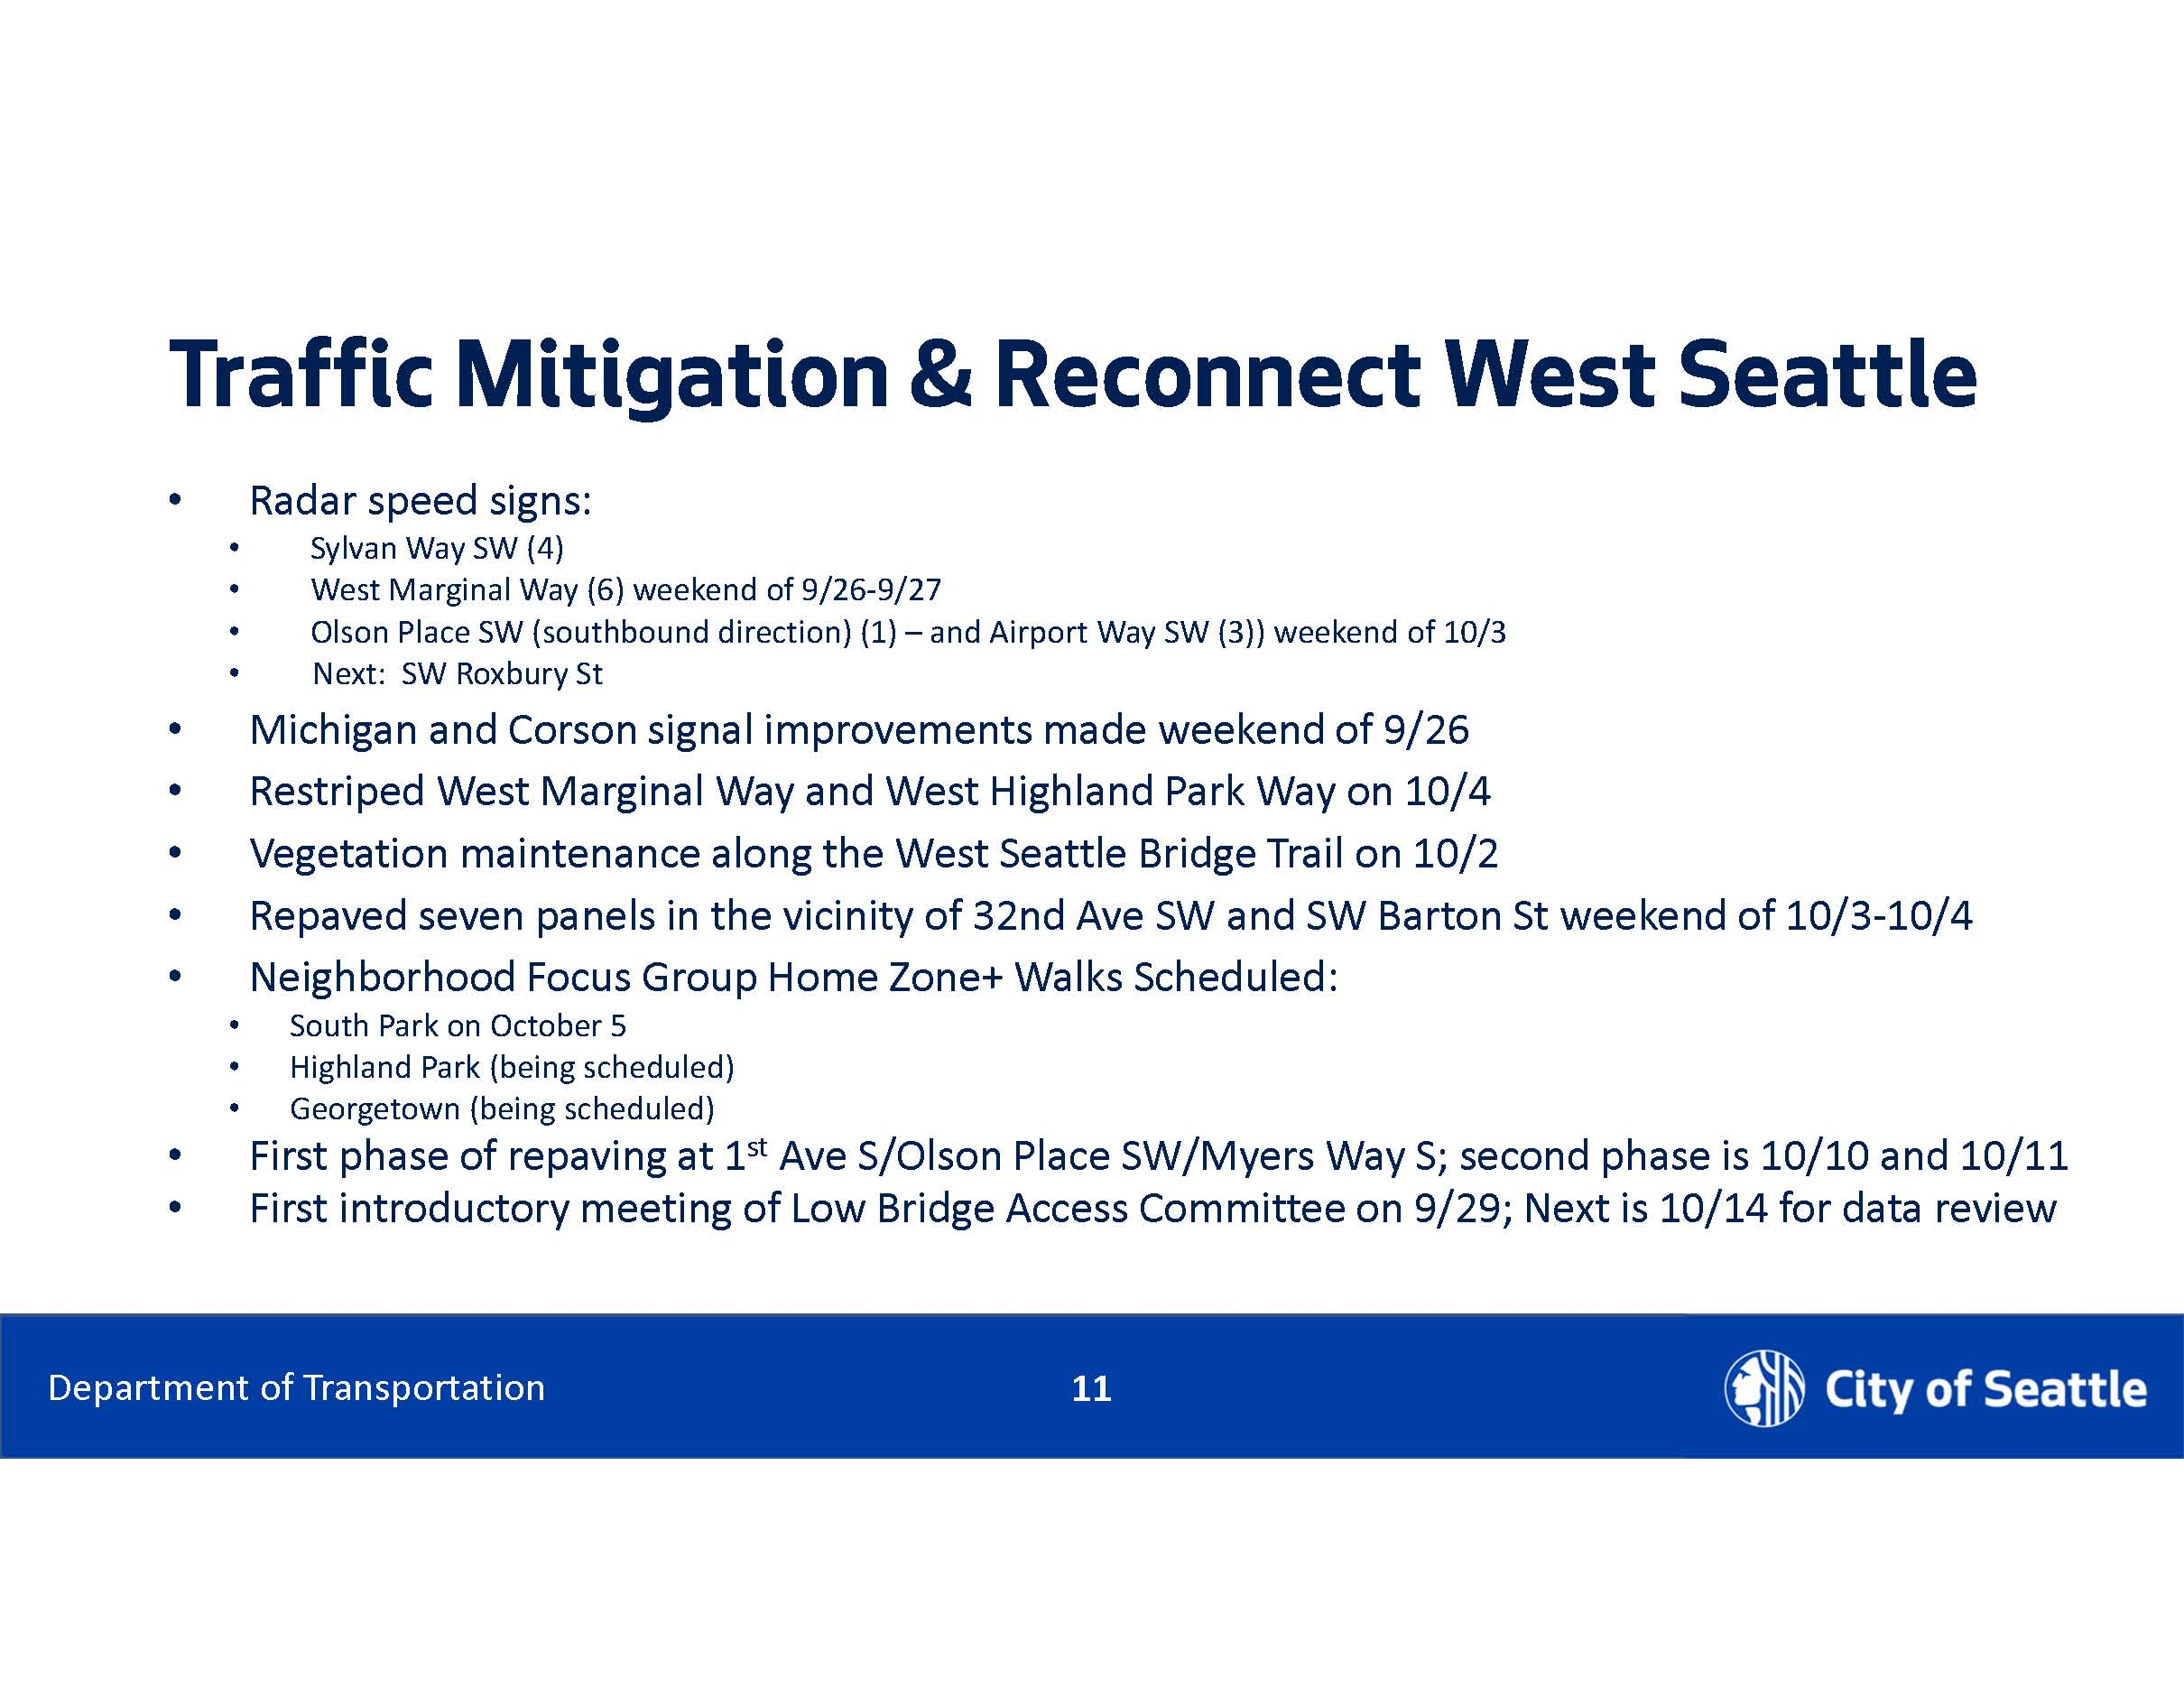 traffic mitigation and reconnect West Seattle